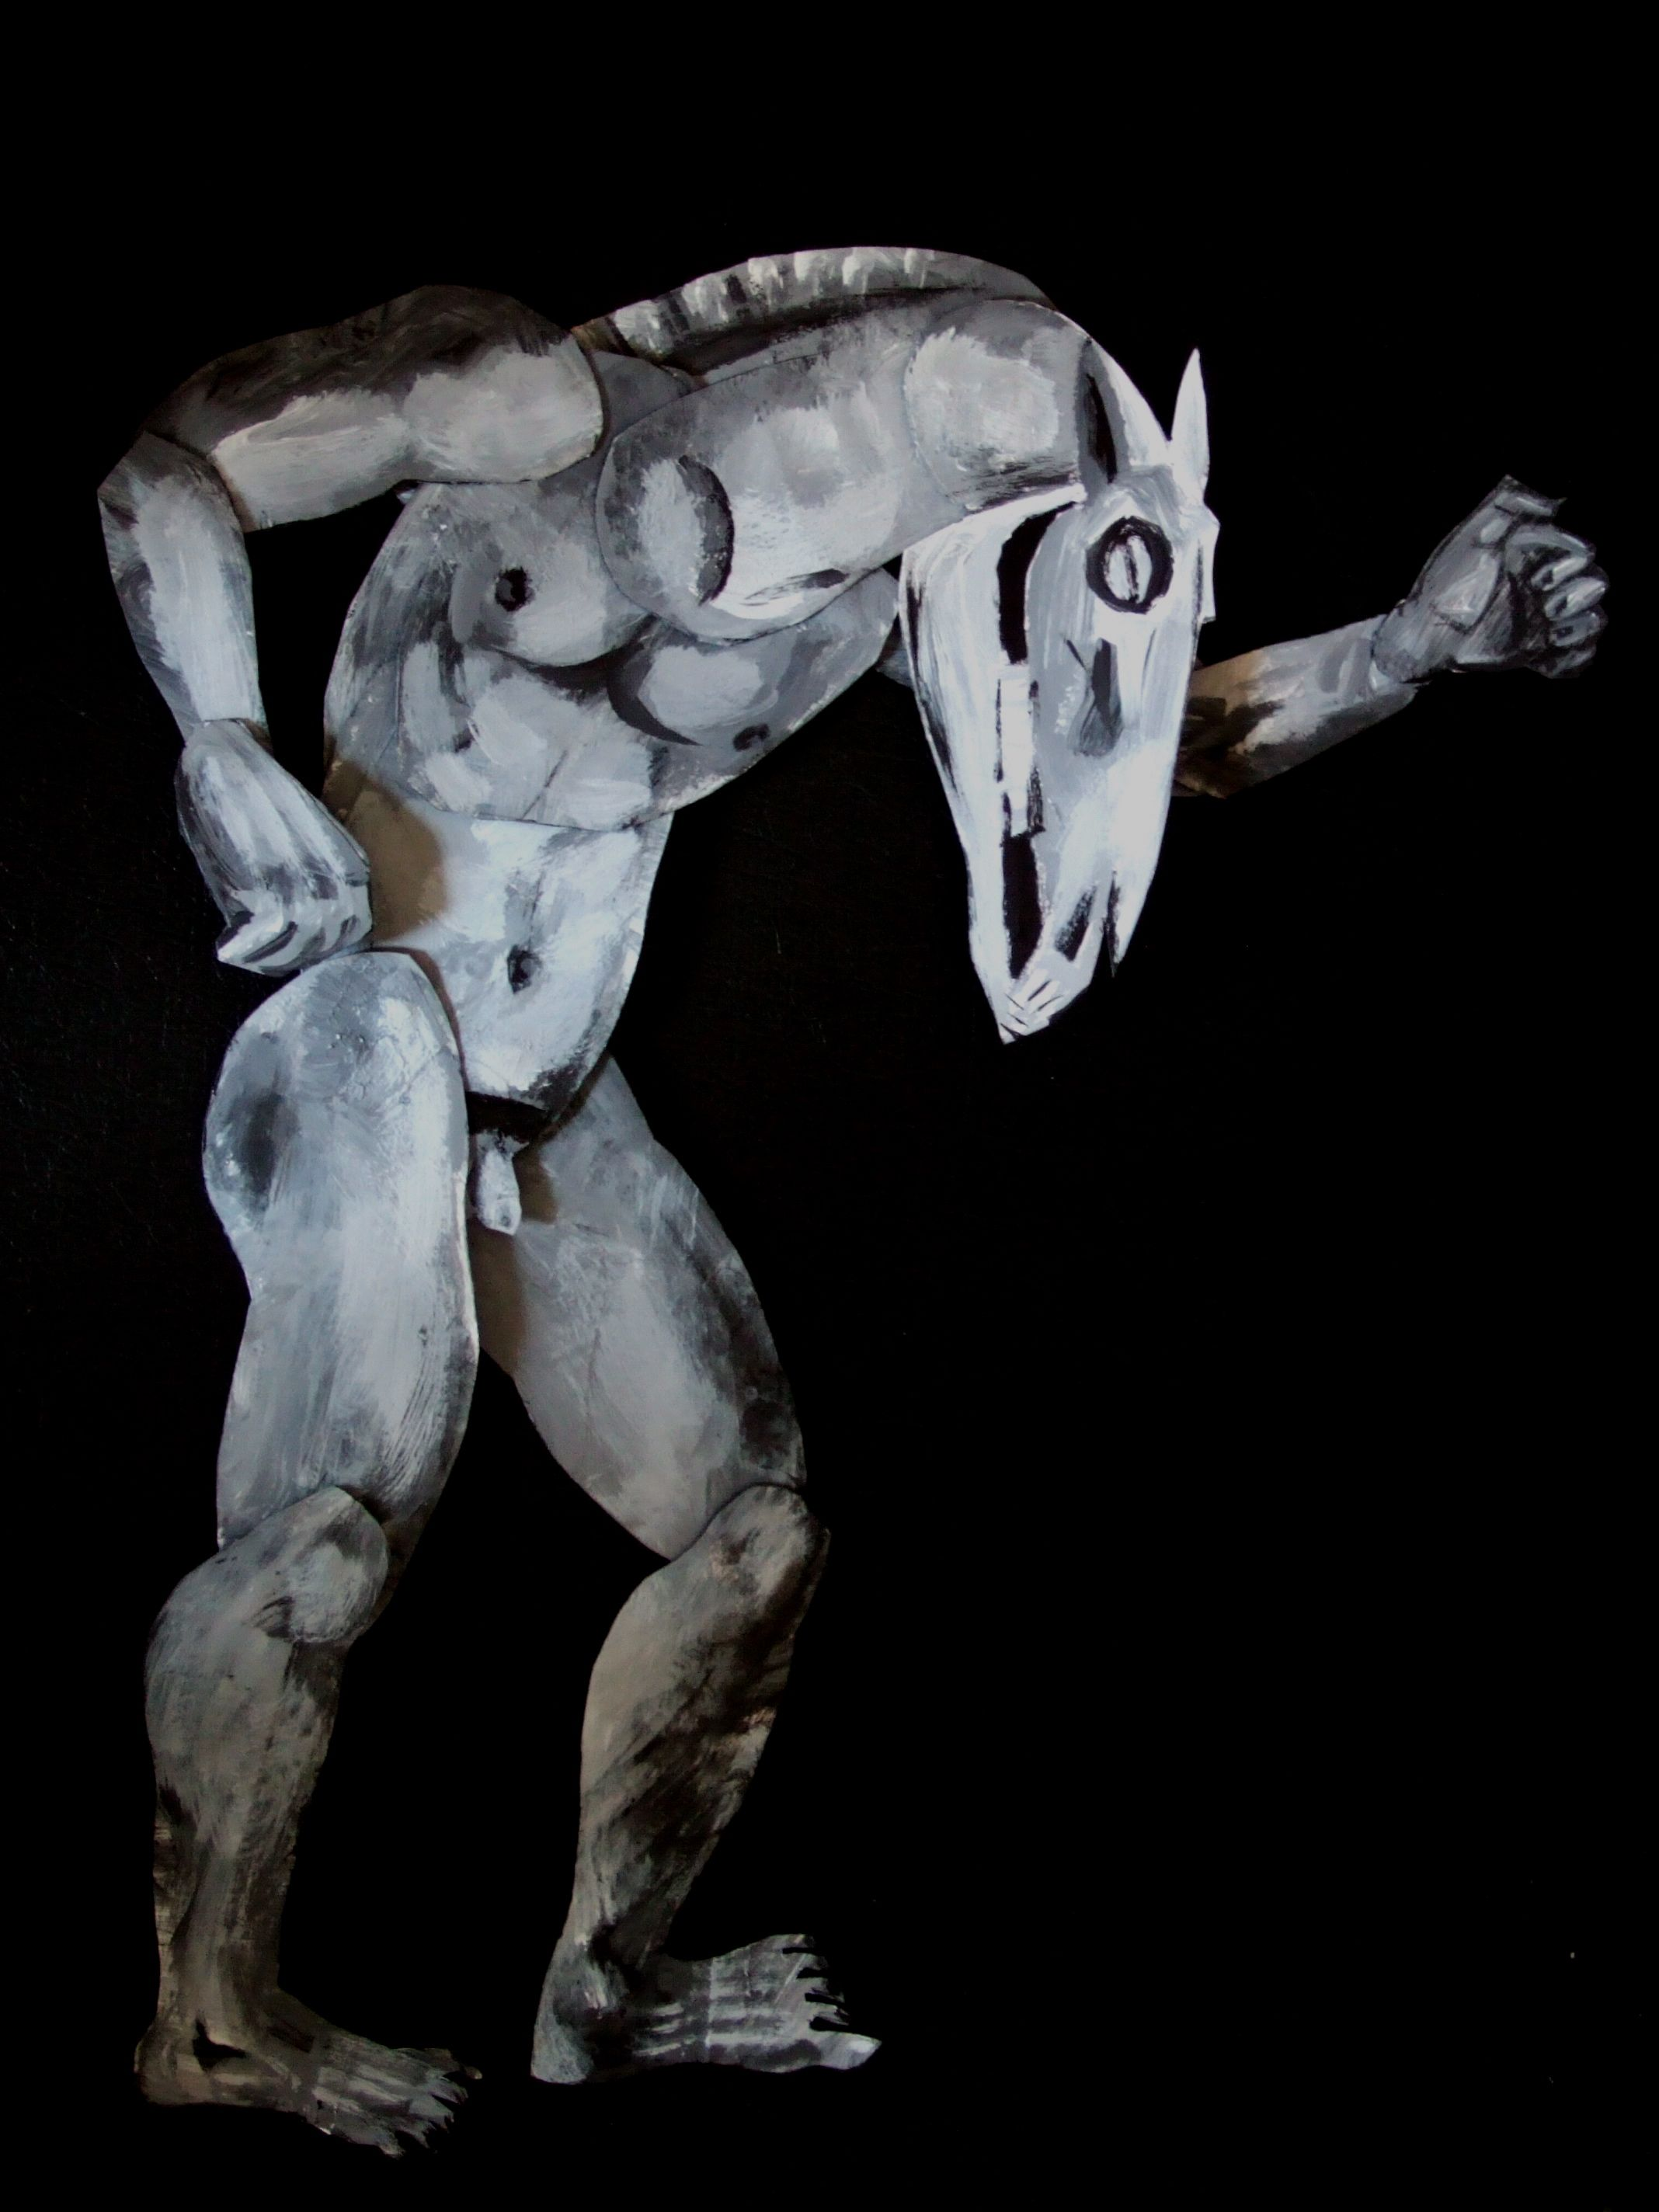 Maquette Of A Horse Man Hybrid By Clive Hicks Jenkins For Equus